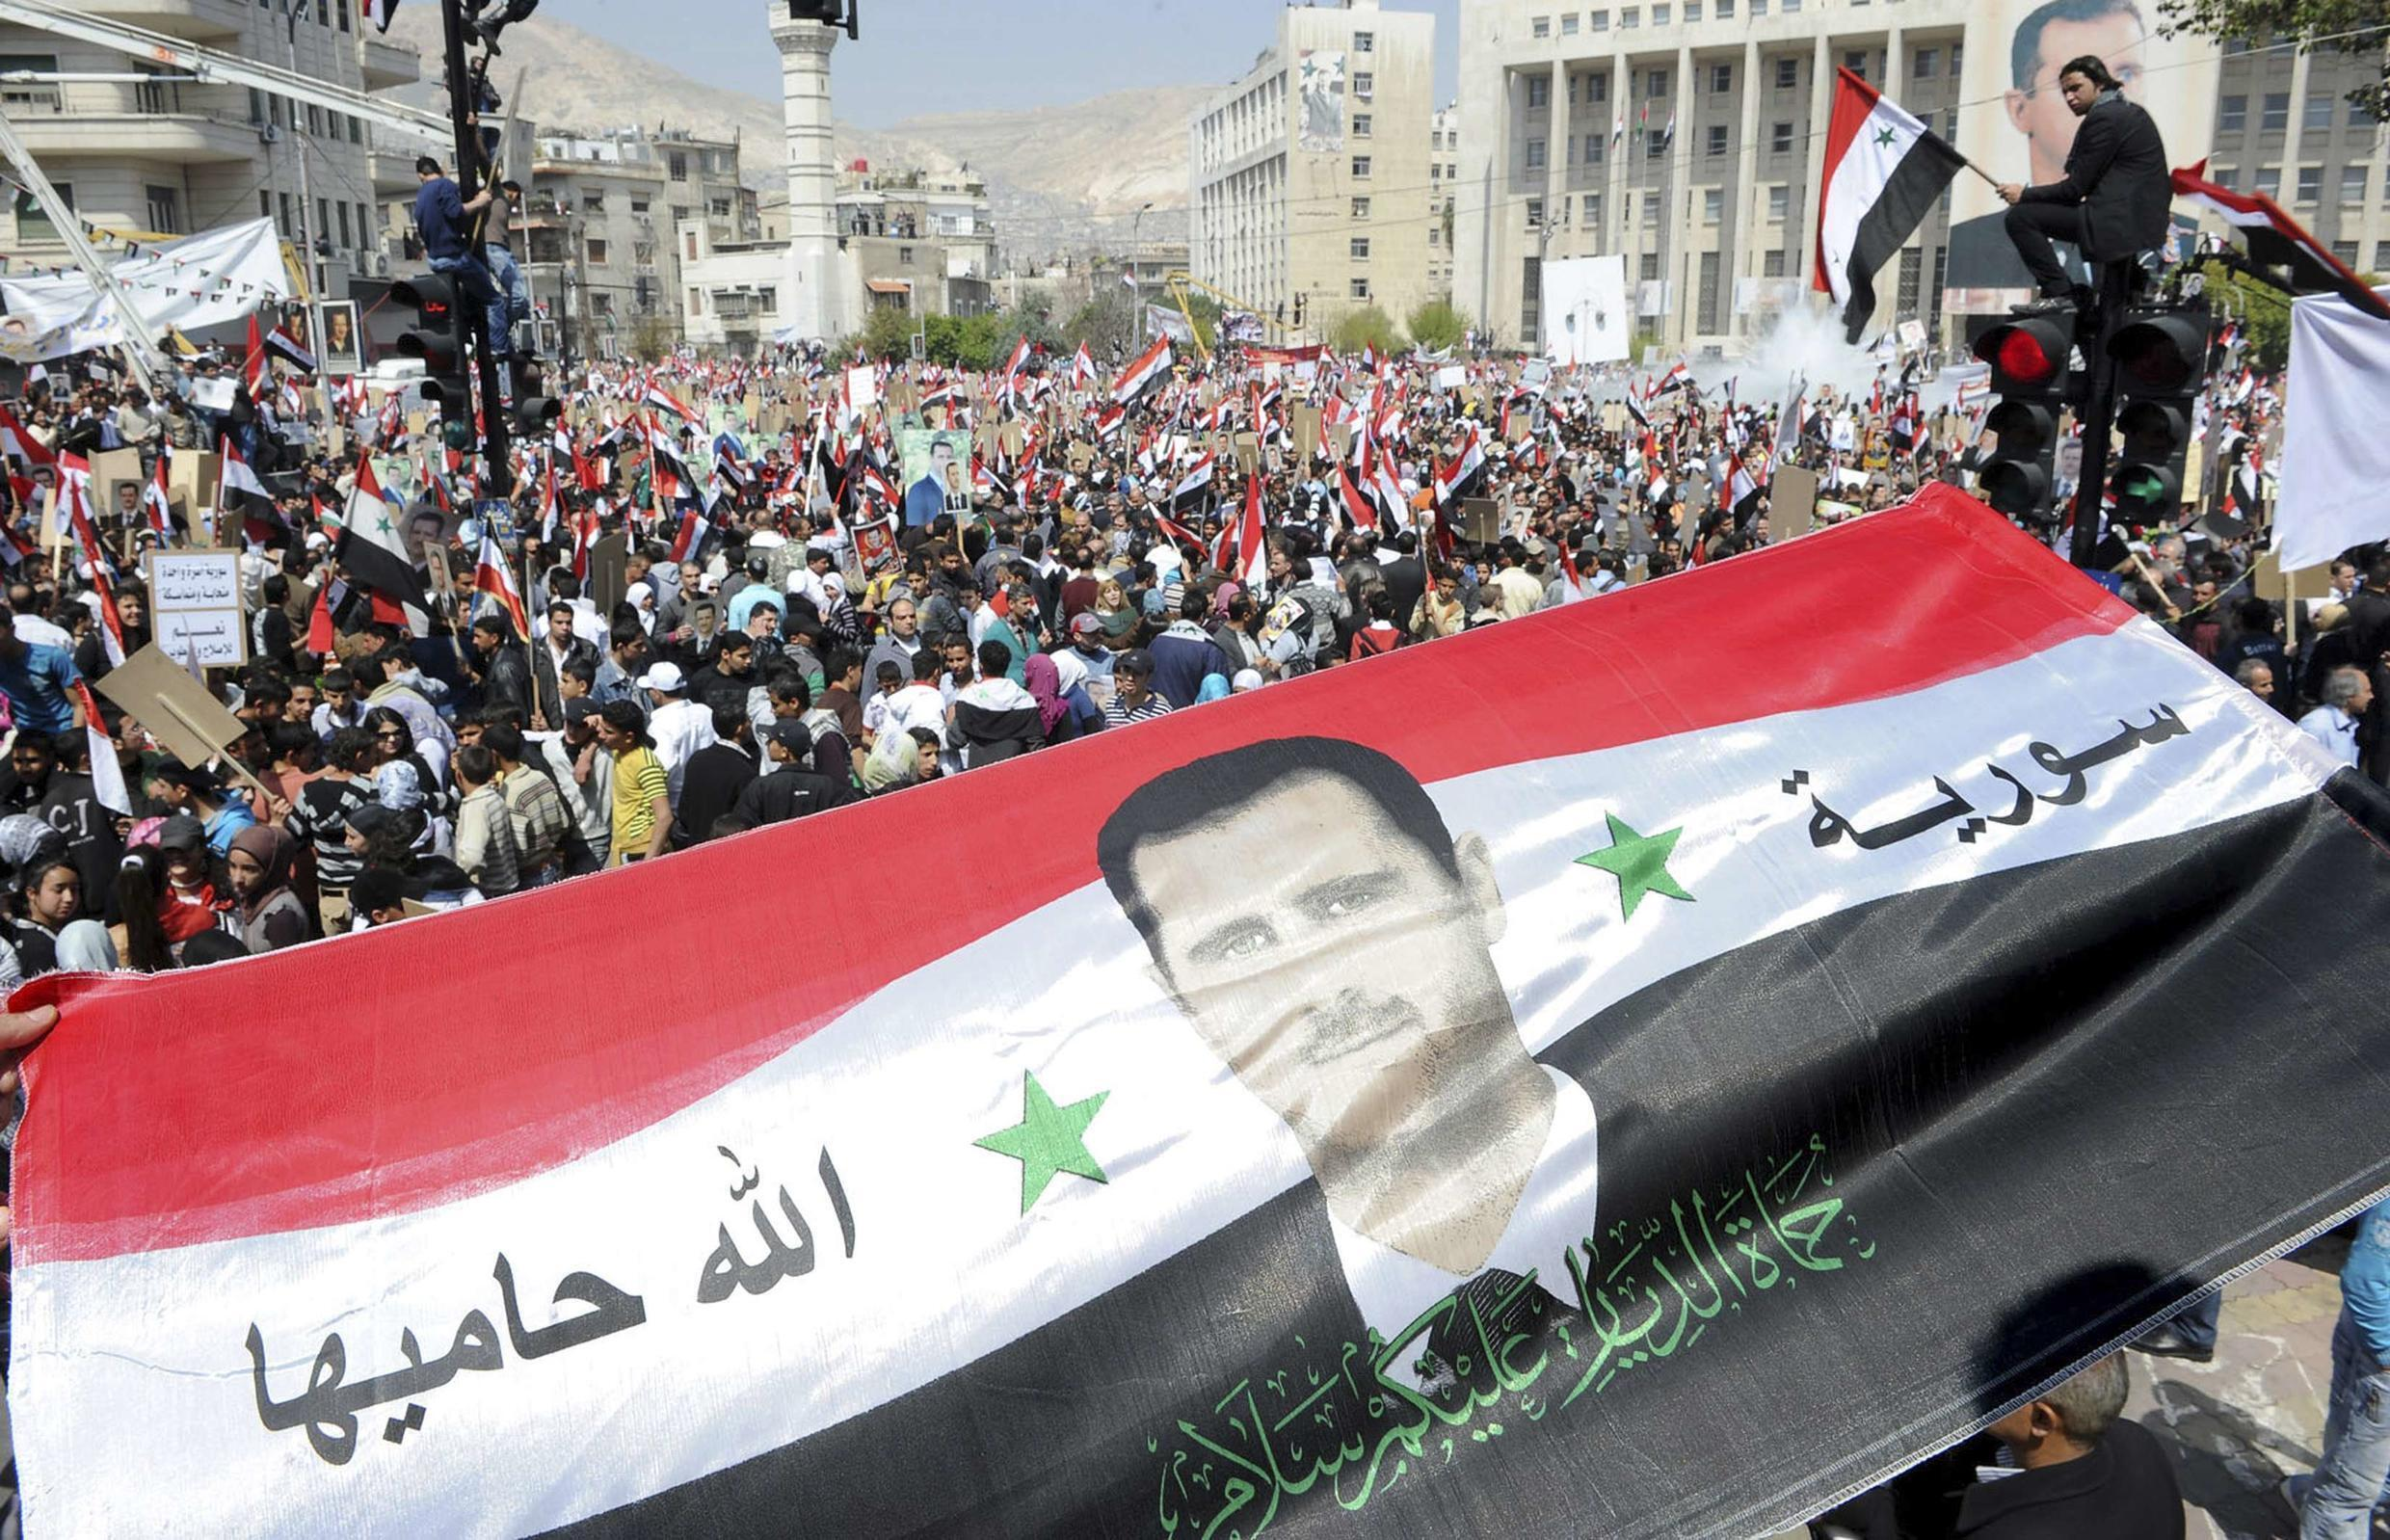 Assad supporters demonstrate on Tuesday